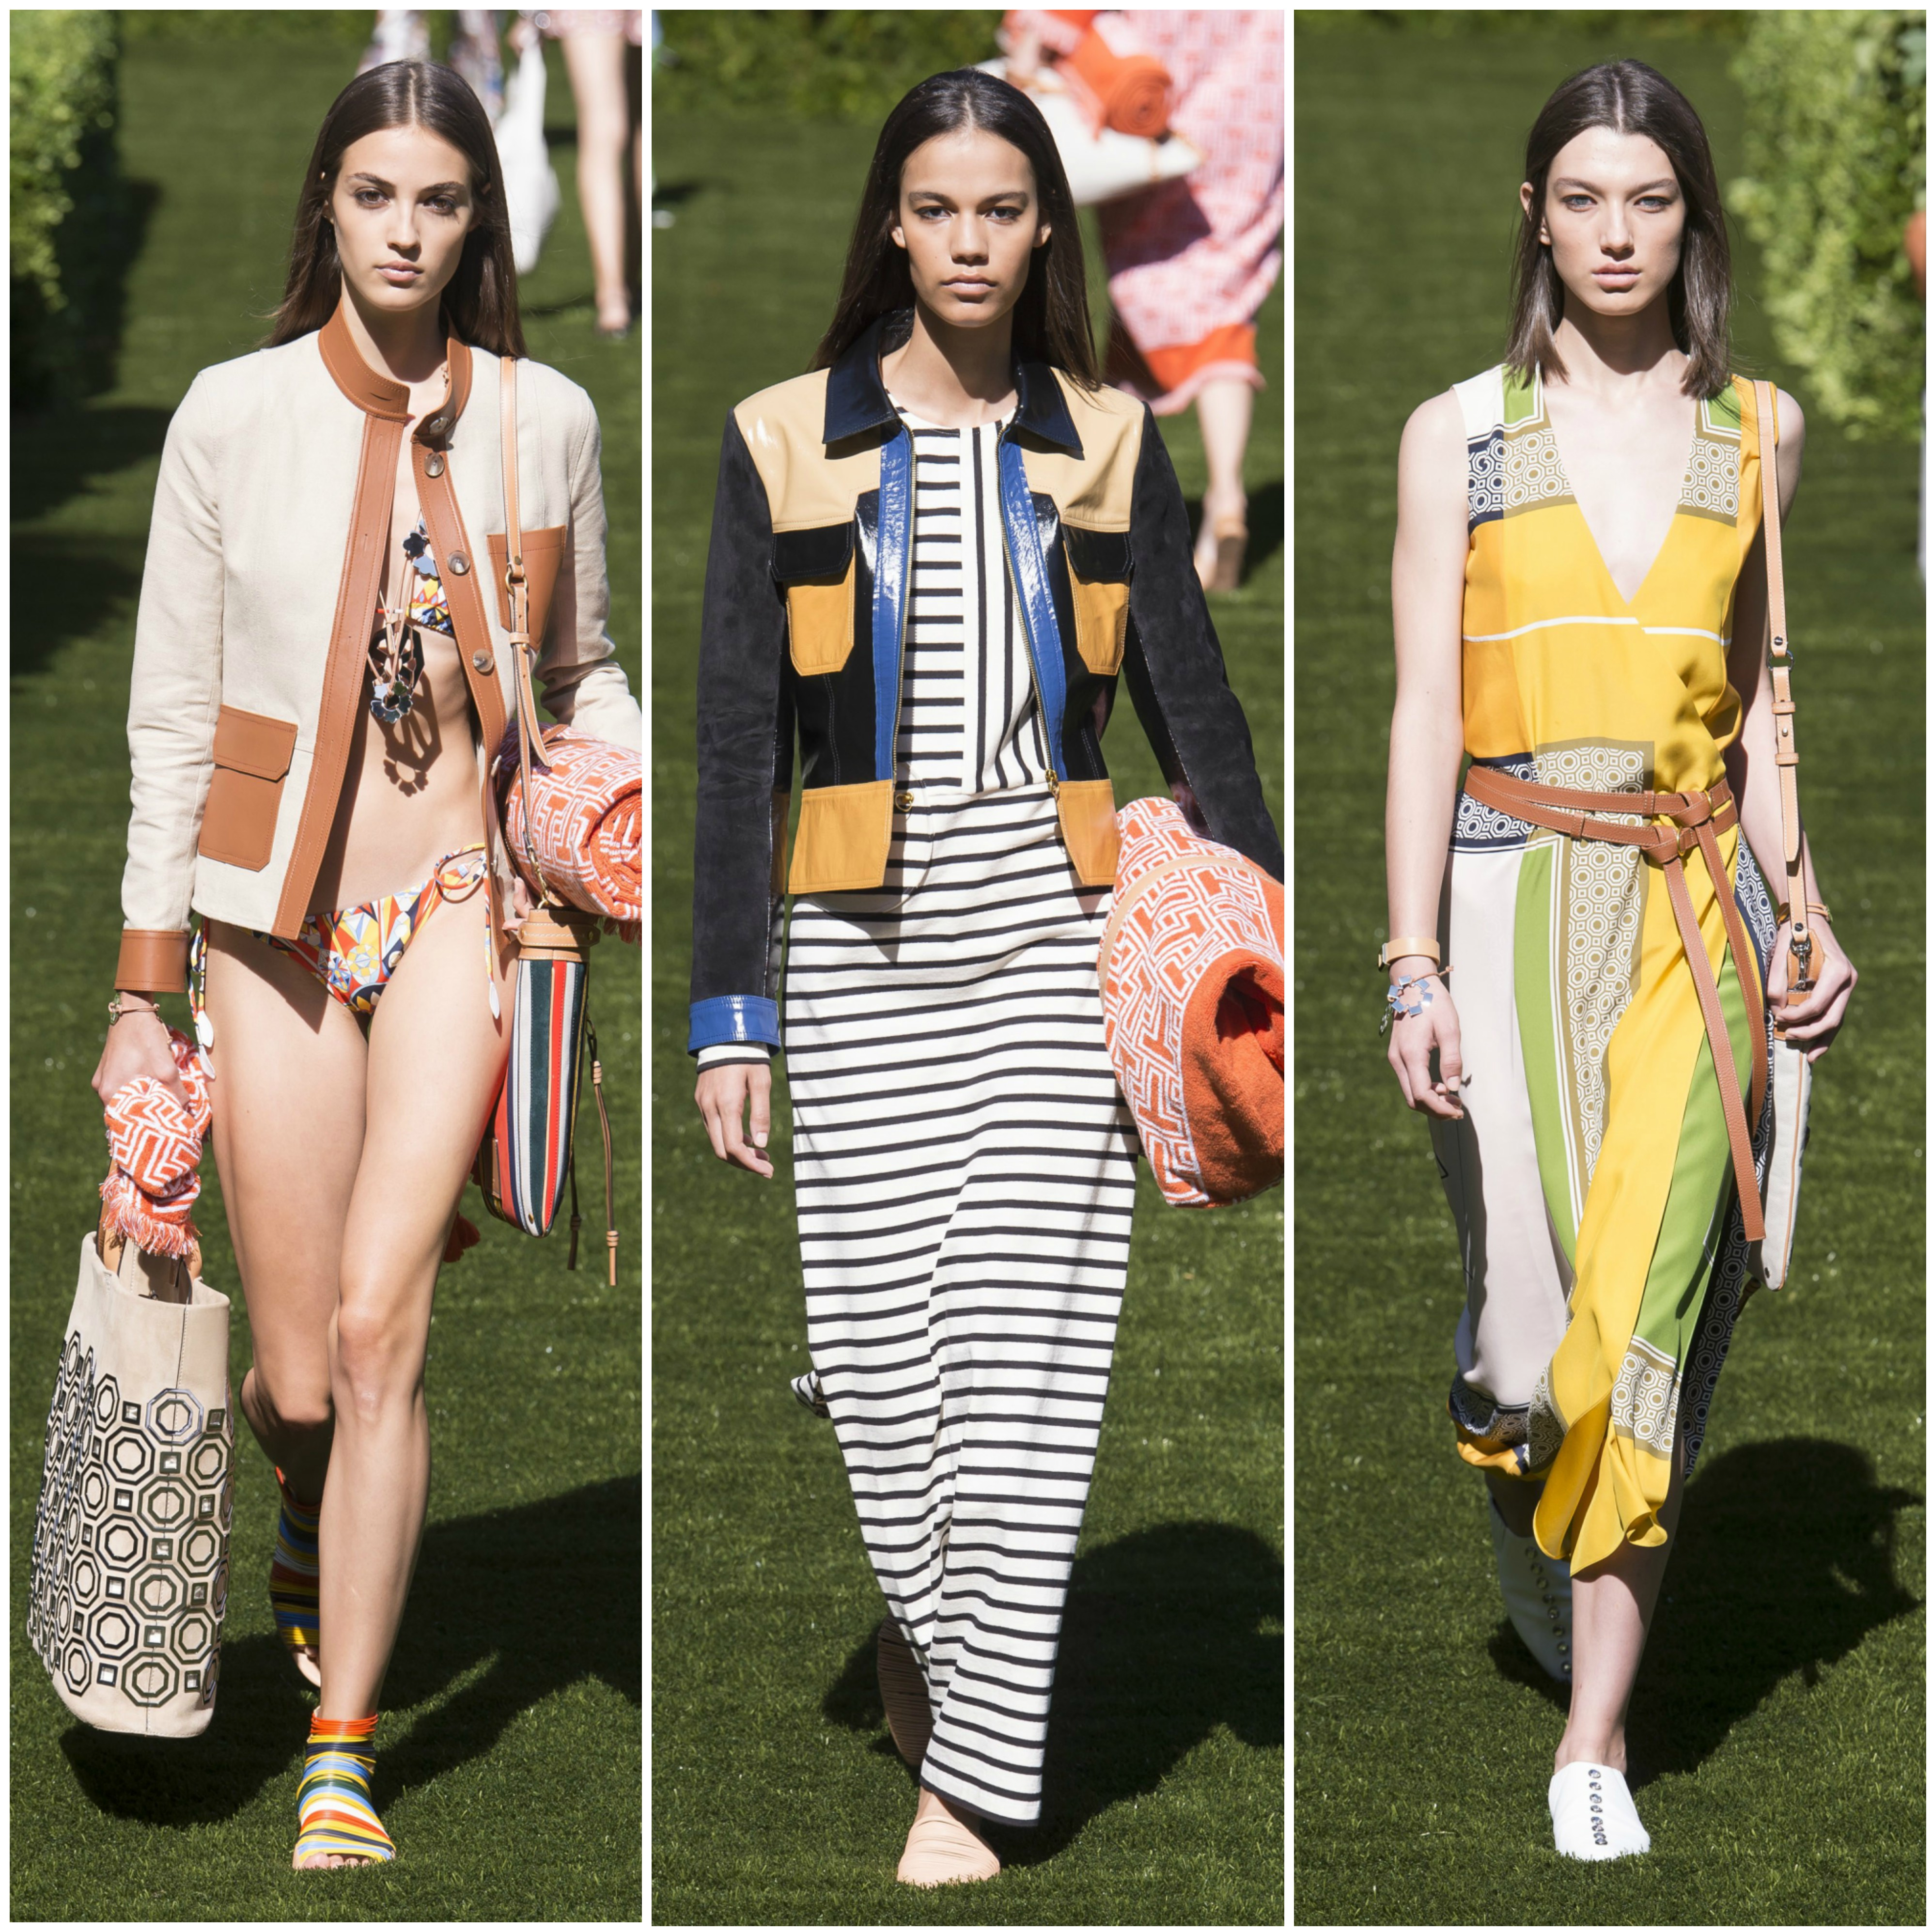 Spring 2018 from https://www.toryburch.com/, Dressed by Tia, report, Tia Stankova, runway, new colection